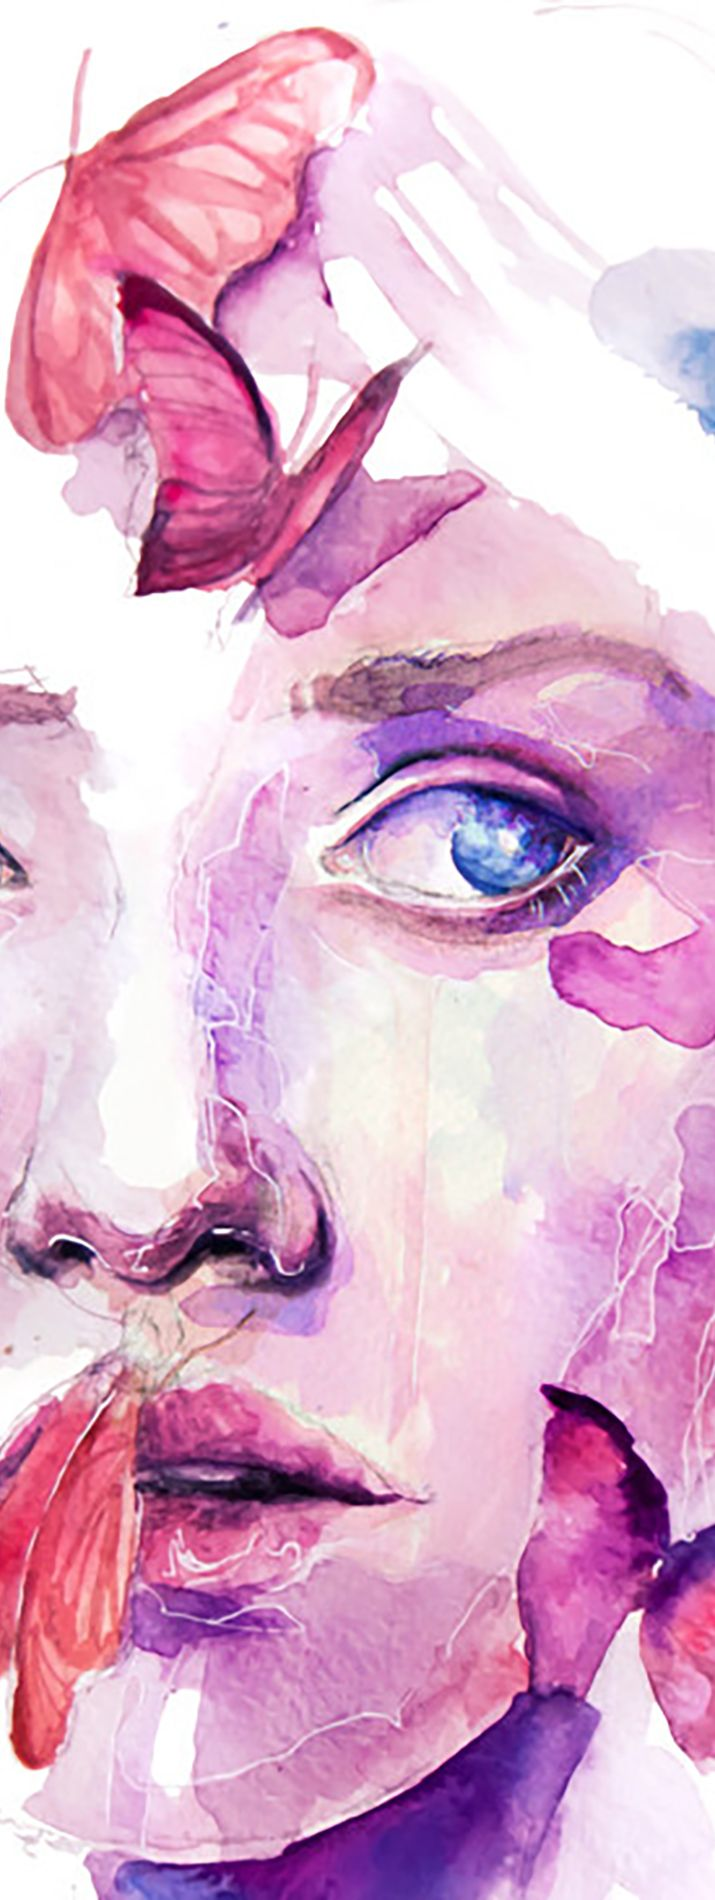 About A New Place by Agnes Cecile - Prints available in a variety of formats at…